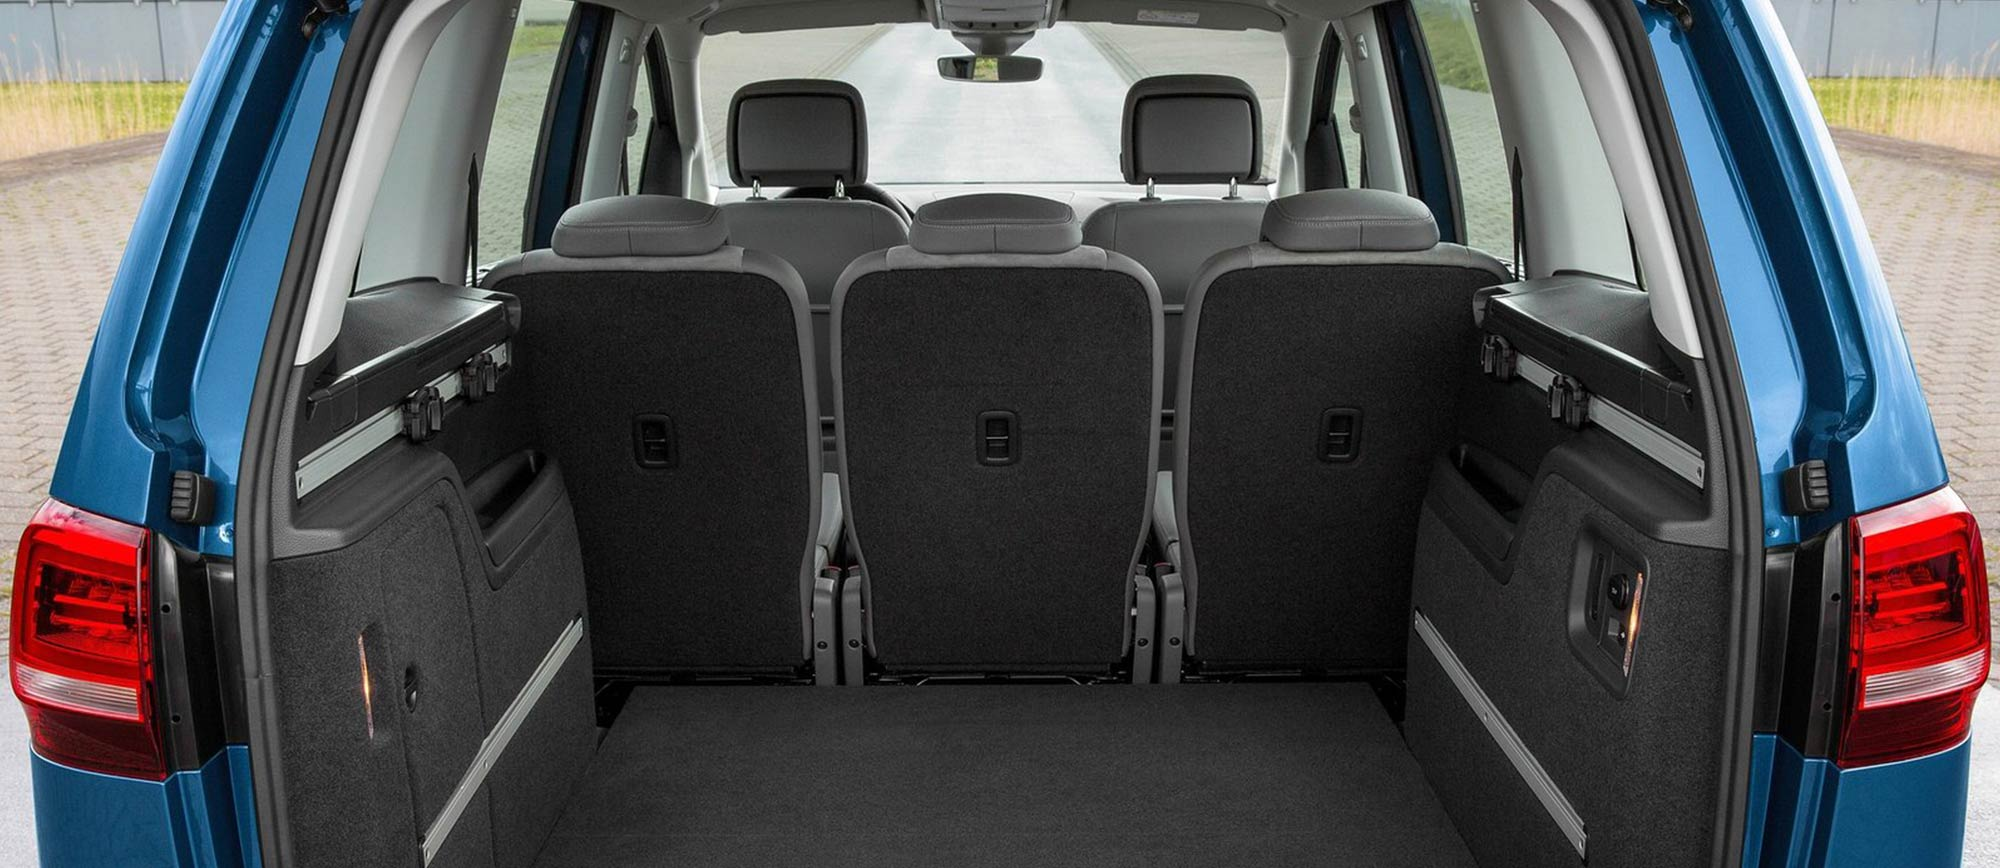 volkswagen sharan monospace en vente charleroi et namur. Black Bedroom Furniture Sets. Home Design Ideas